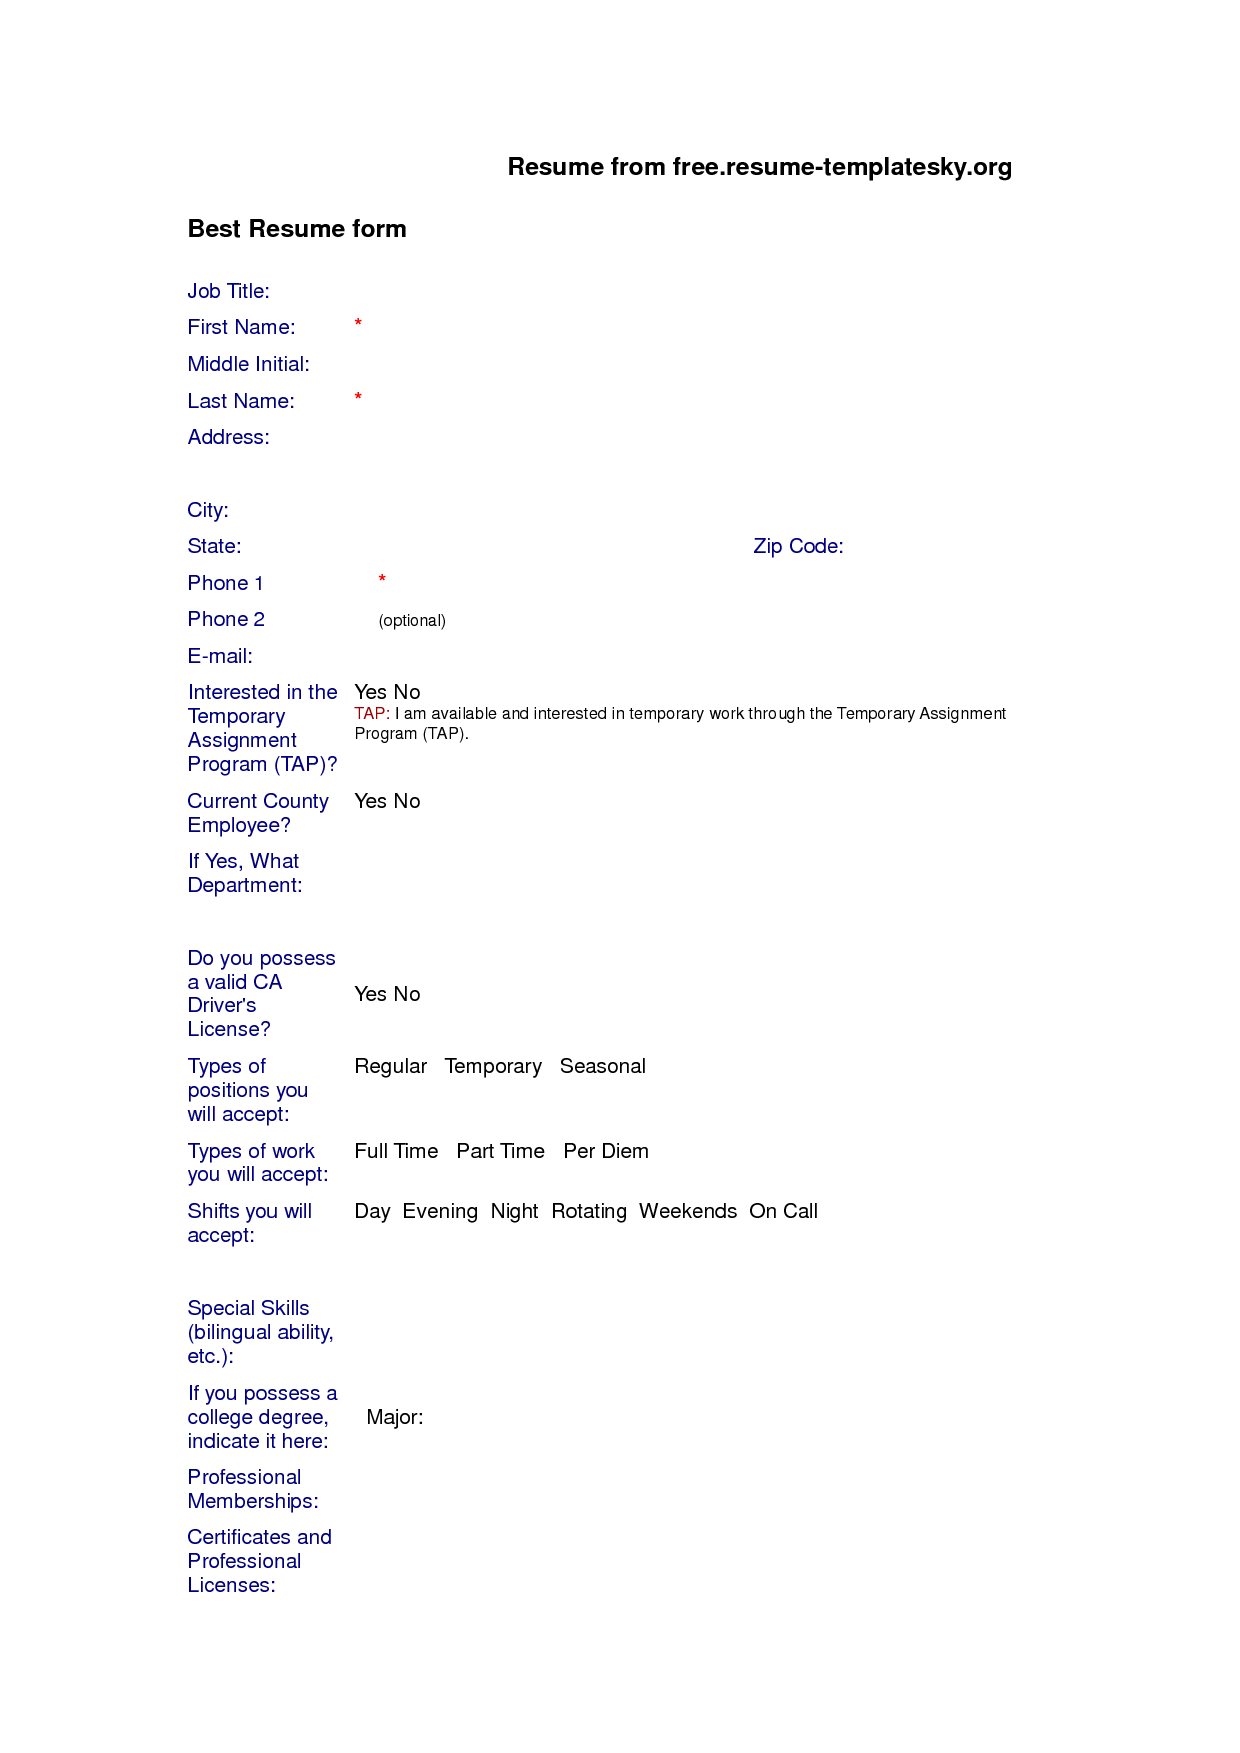 basic biodata format for job resume templates basic biodata format for job biodata resume format and 6 template samples hloom biodata